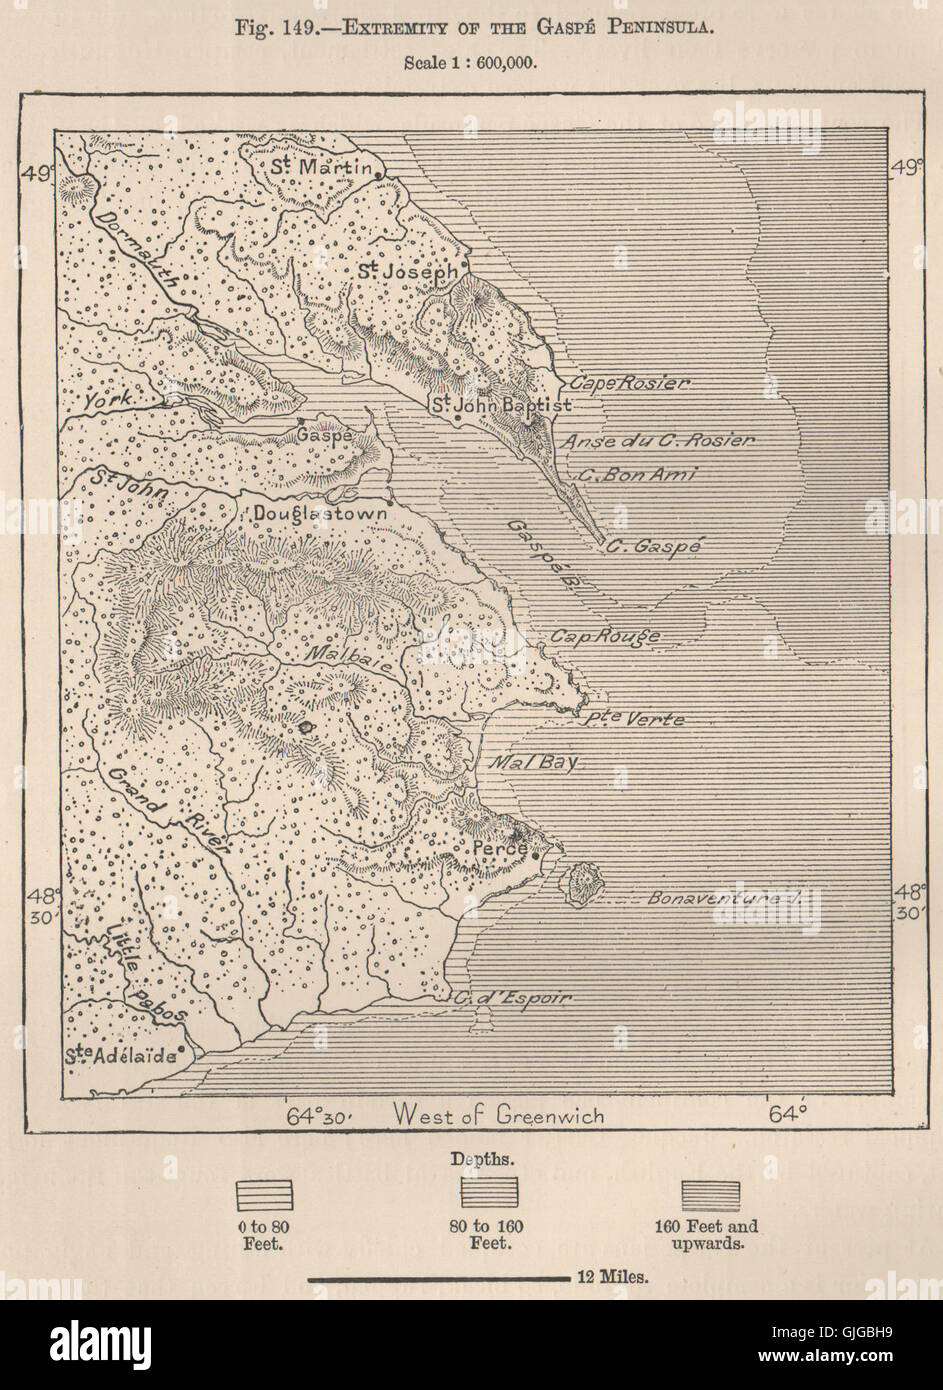 Gaspe Canada Map.Extremity Of The Gaspe Peninsula Canada 1885 Antique Map Stock